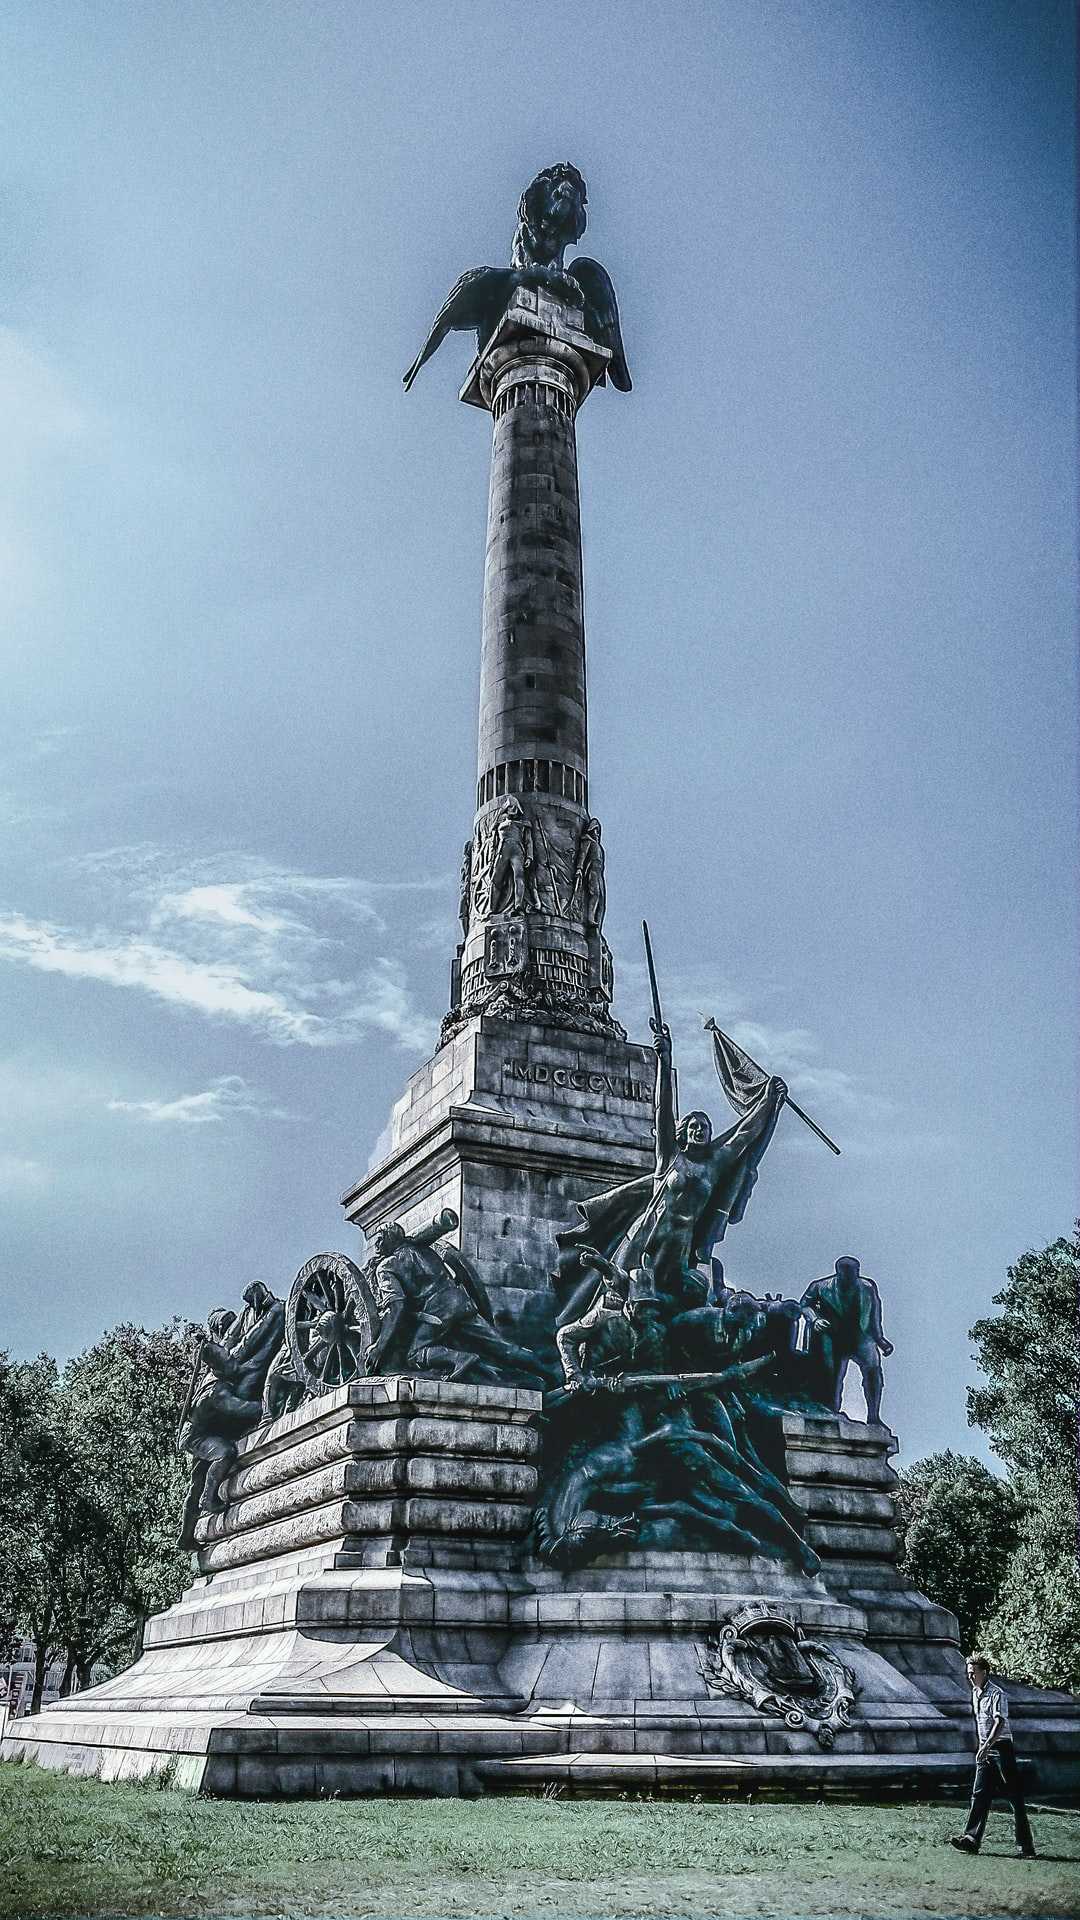 The monument stands 45 meters high.